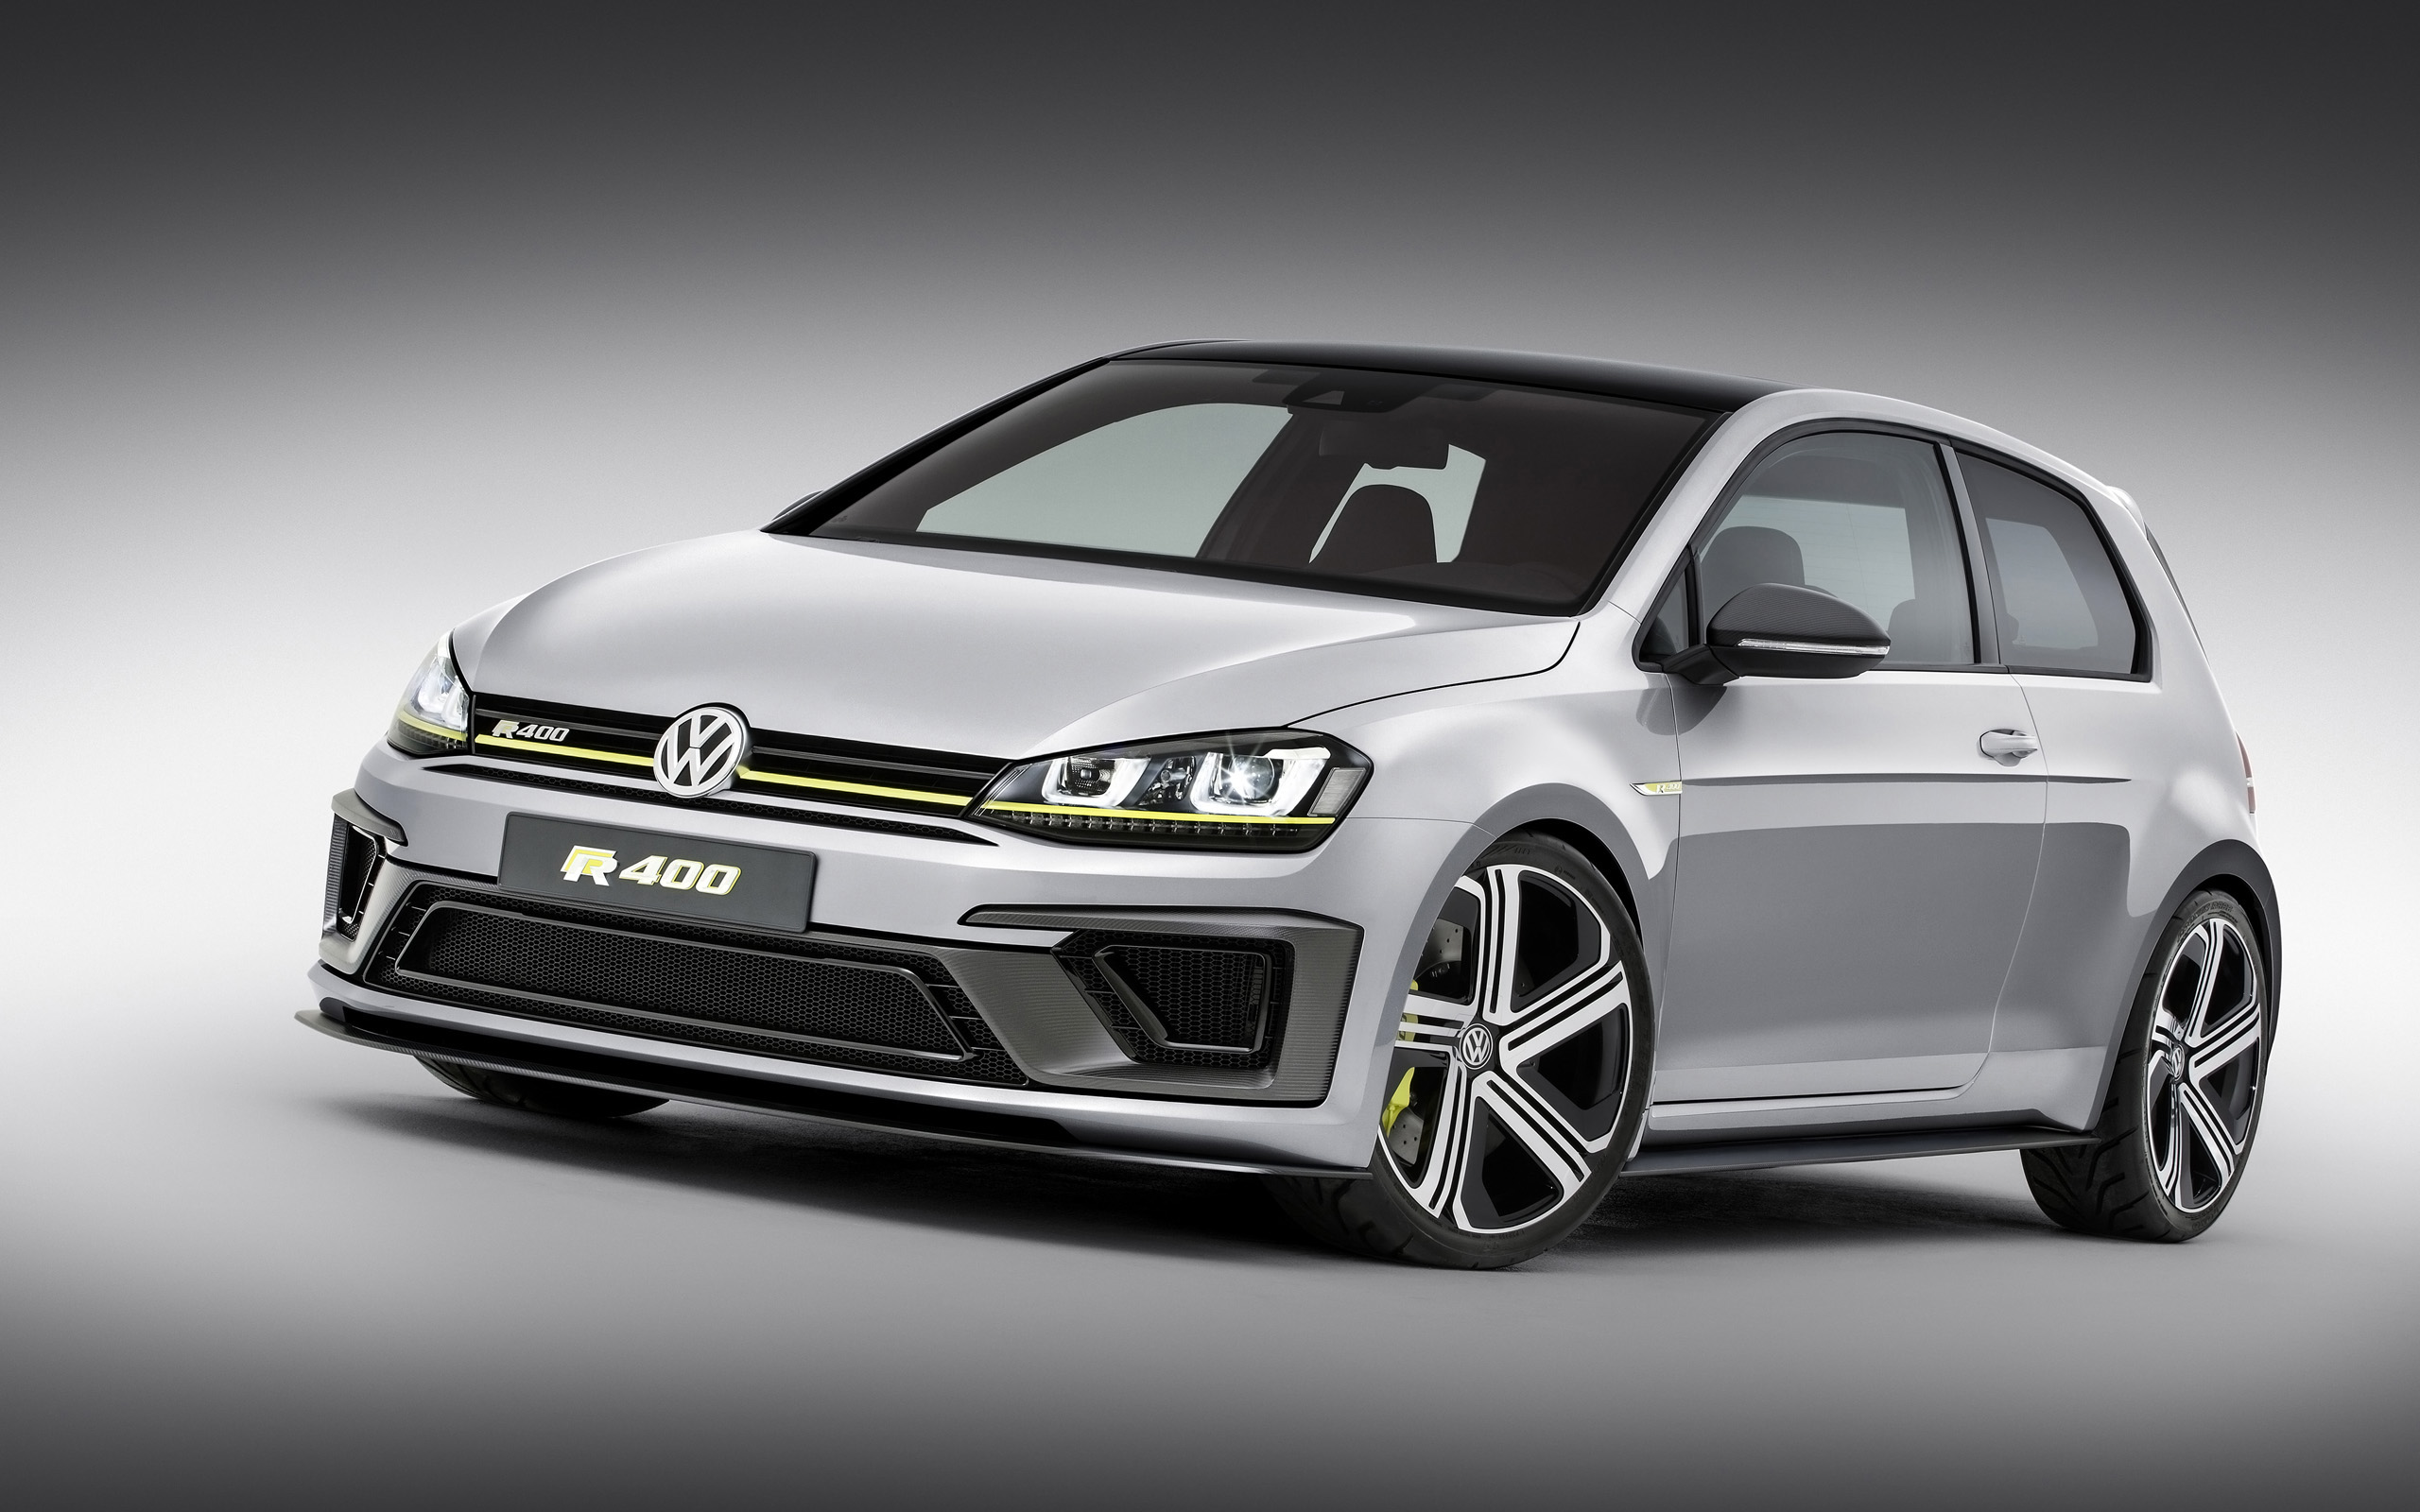 2014 Volkswagen Golf R 400